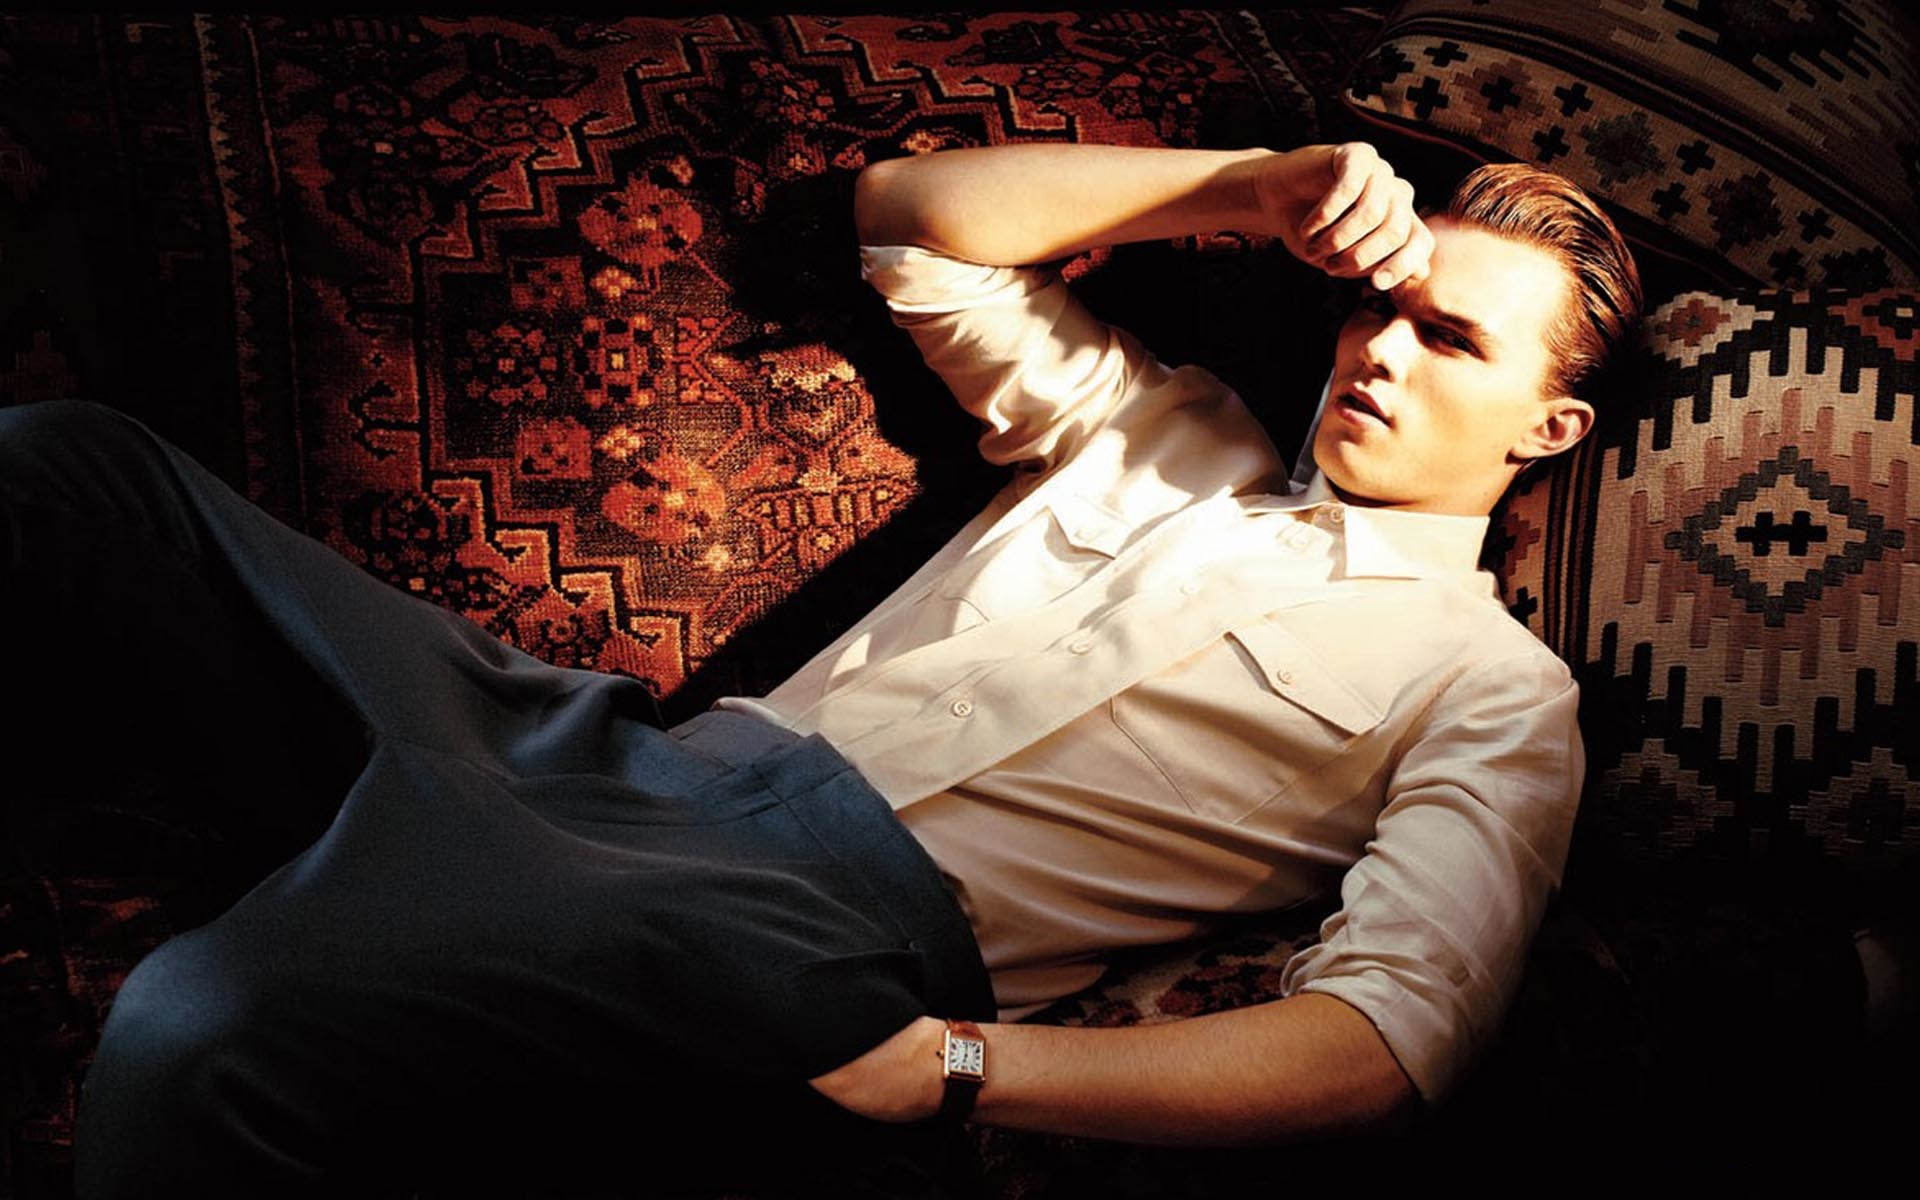 nicholas hoult wallpaper background - photo #36